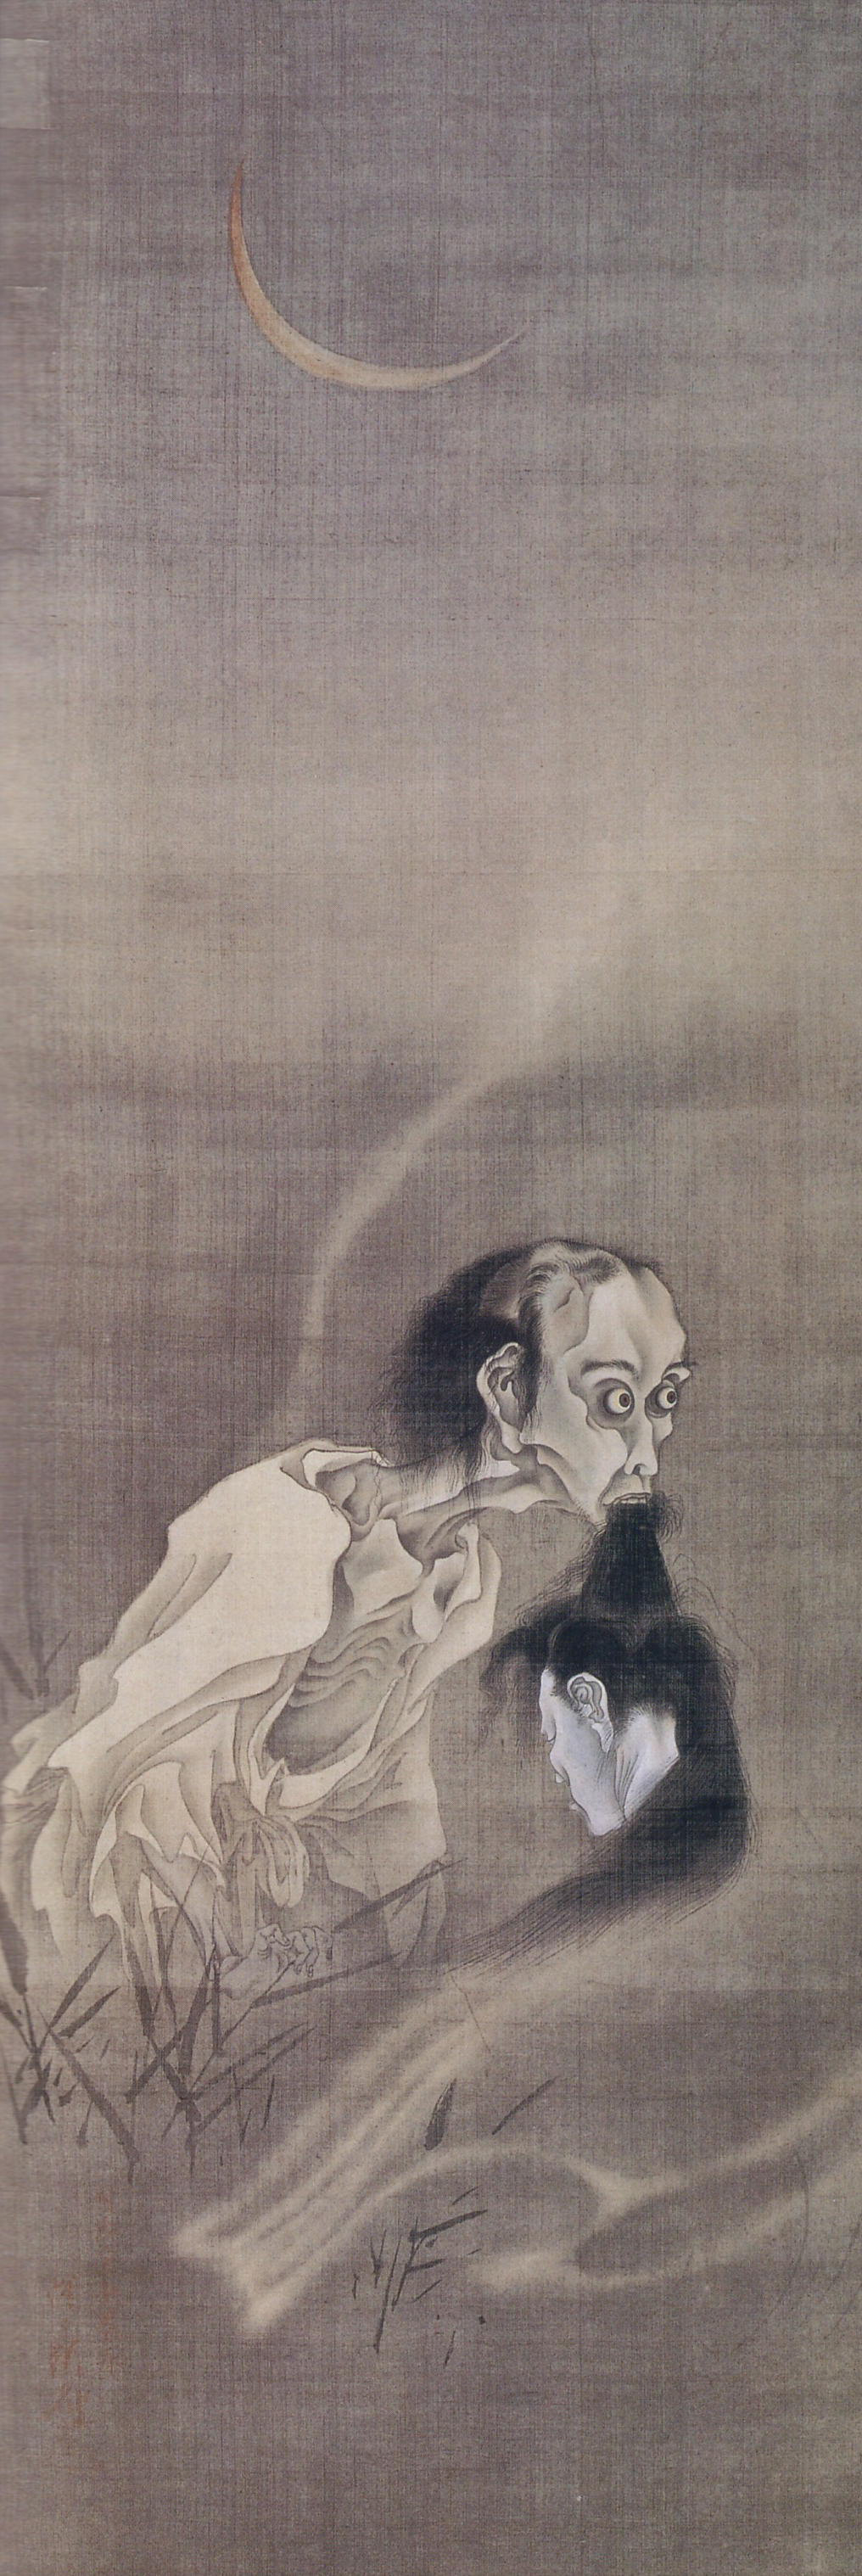 Ghost paintings by Kyo...